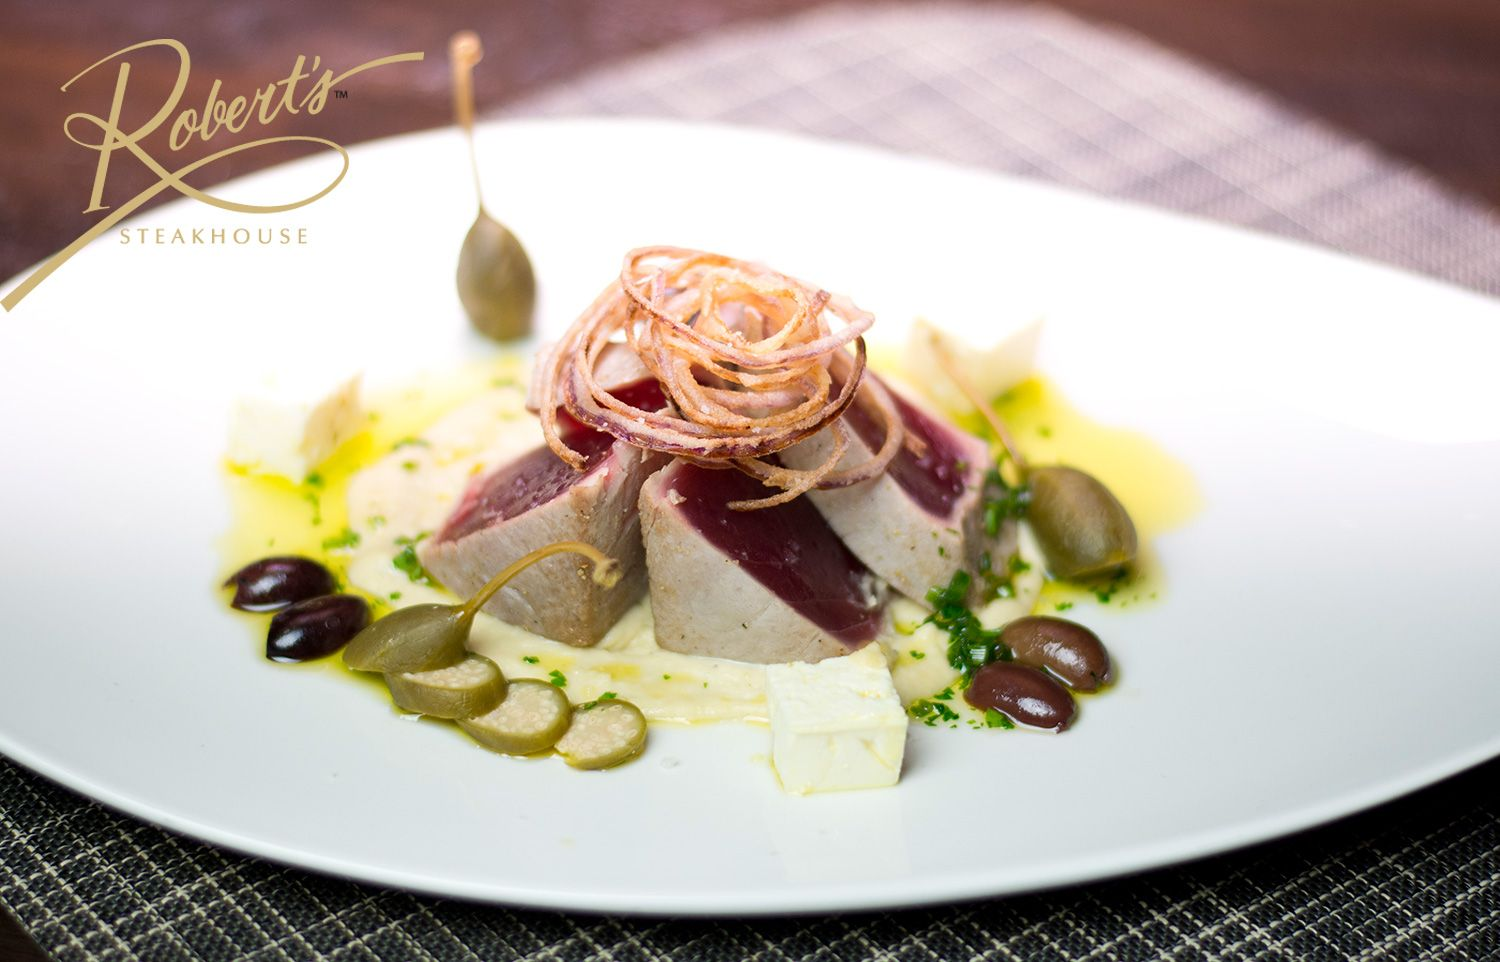 Food or modern art? Chef Savarese's Tuna a la Plancha is both!